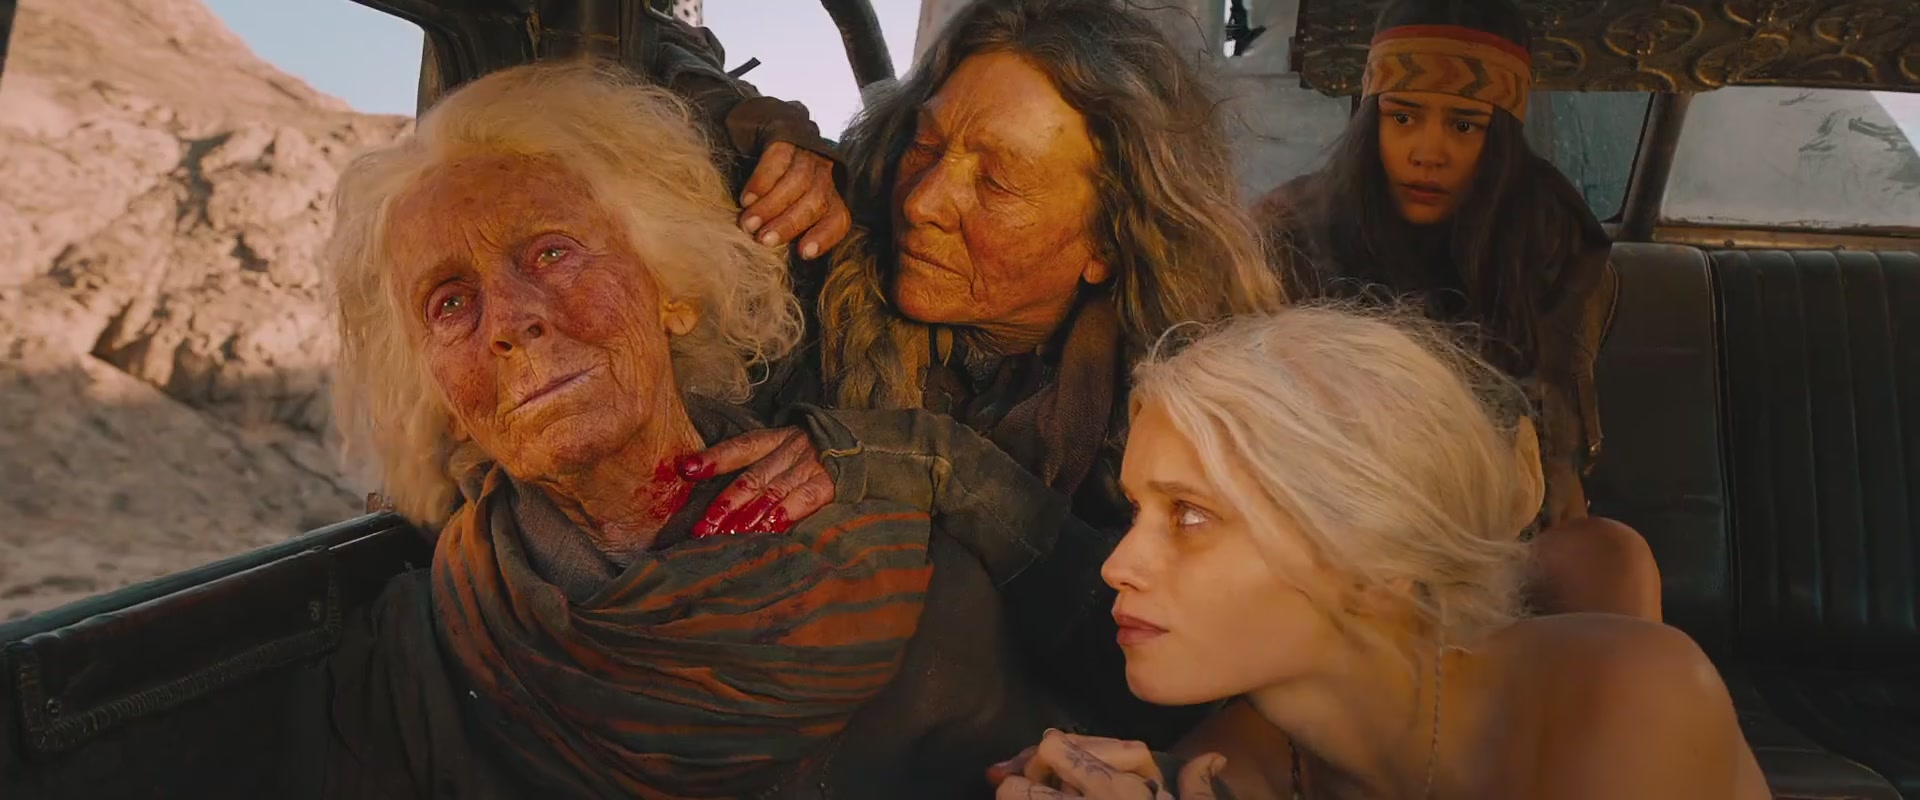 Melissa Jaffer, Abbey Lee, and Courtney Eaton in Mad Max: Fury Road (2015)